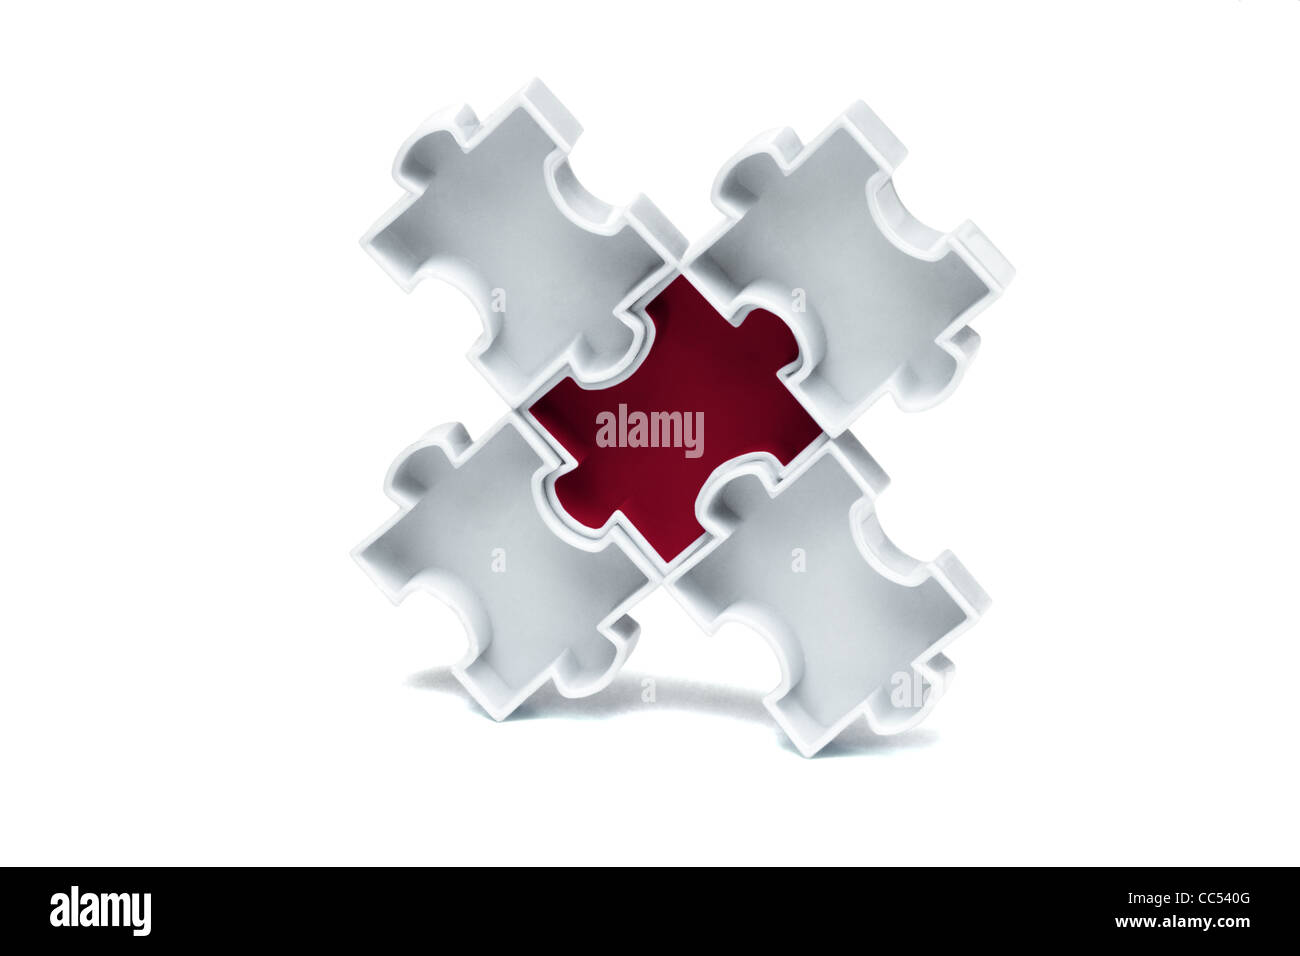 Red jigsaw puzzle interlocked in the centre with white pieces - Stock Image